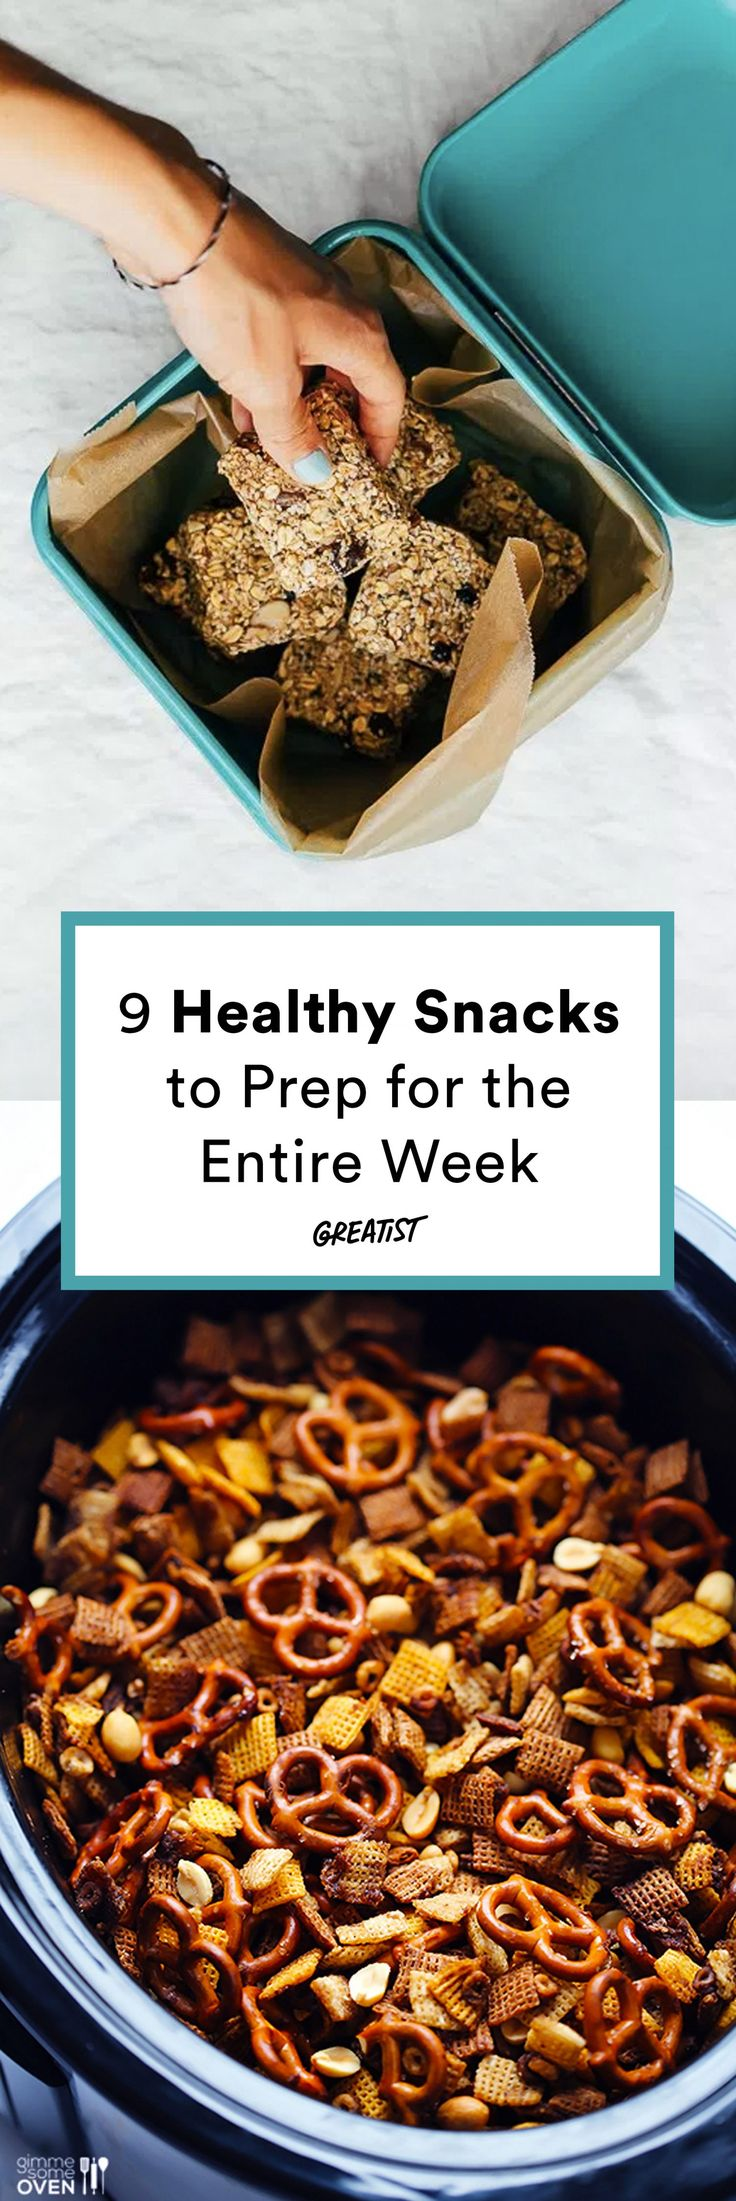 Banish those 4 p.m. snack attacks for good. #greatist http://greatist.com/eat/healthy-snacks-to-prep-for-the-week